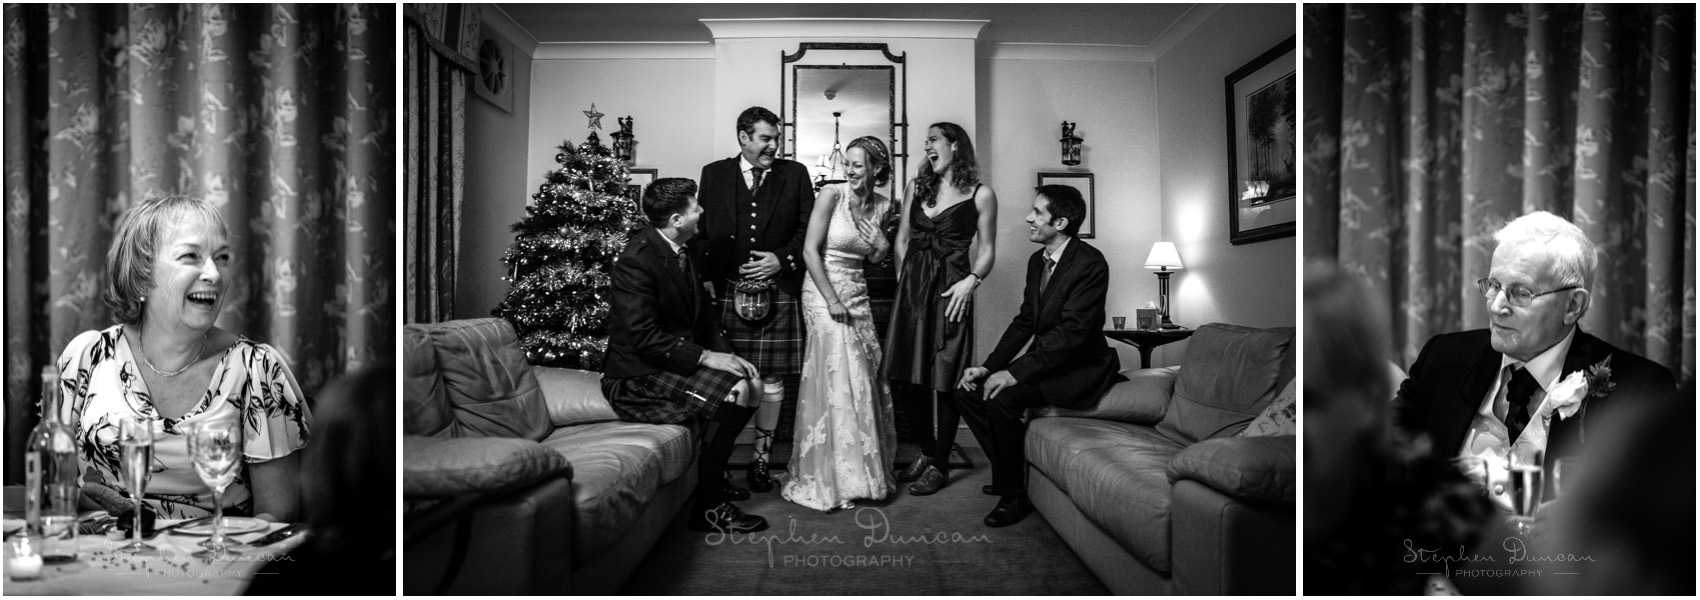 Romsey Abbey wedding photographer bride with guests black and white